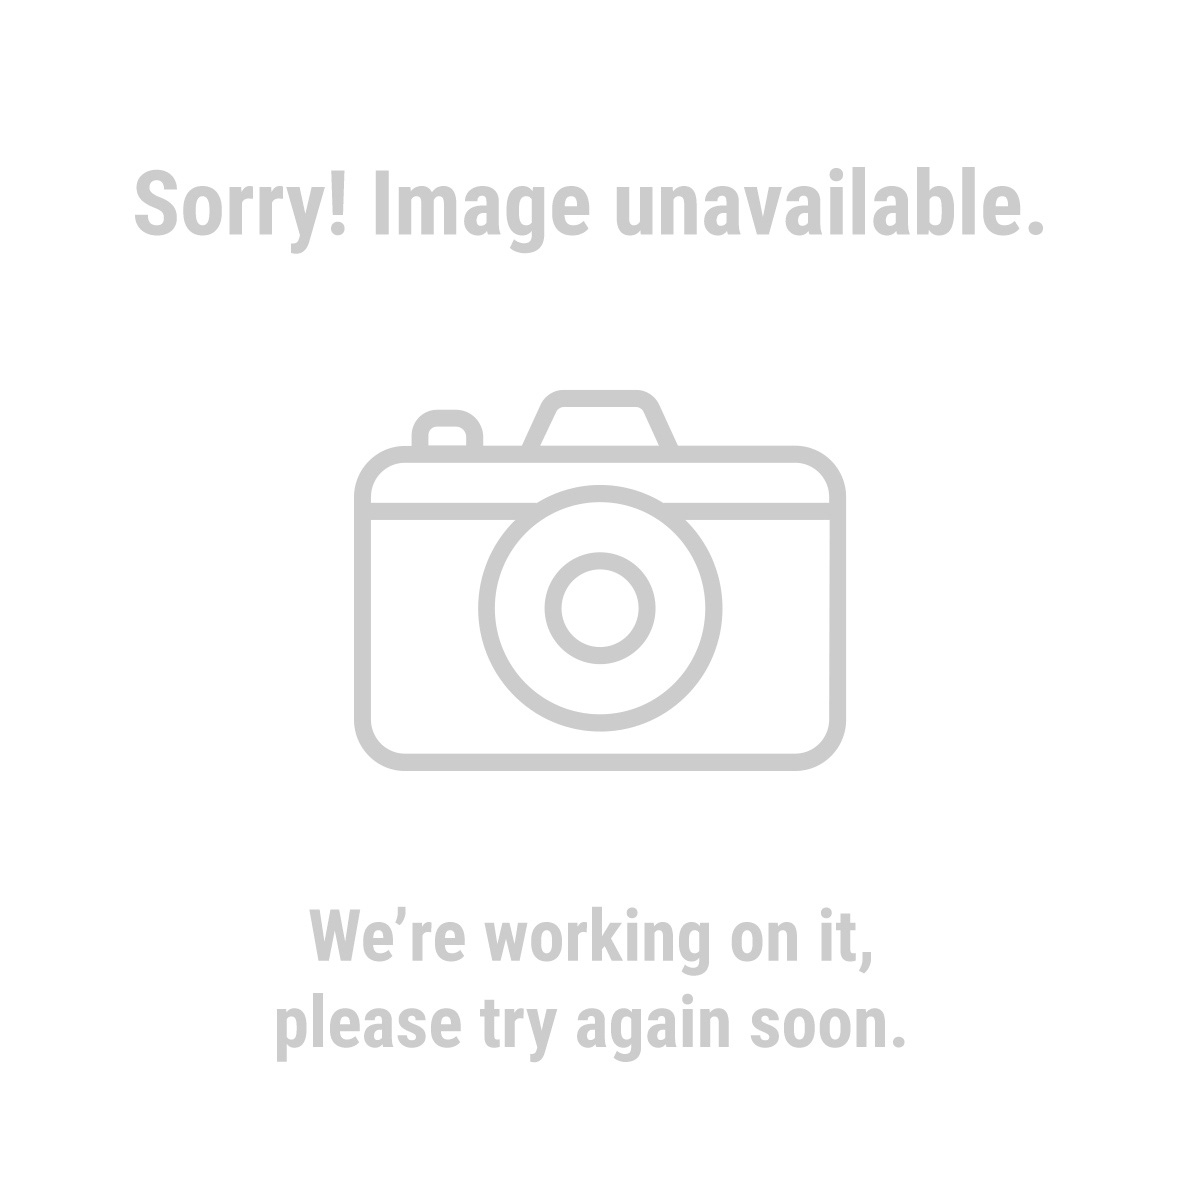 HFT 69204 15 ft. 2 in. x 19 ft. 6 in. Reflective Heavy Duty Silver Tarp